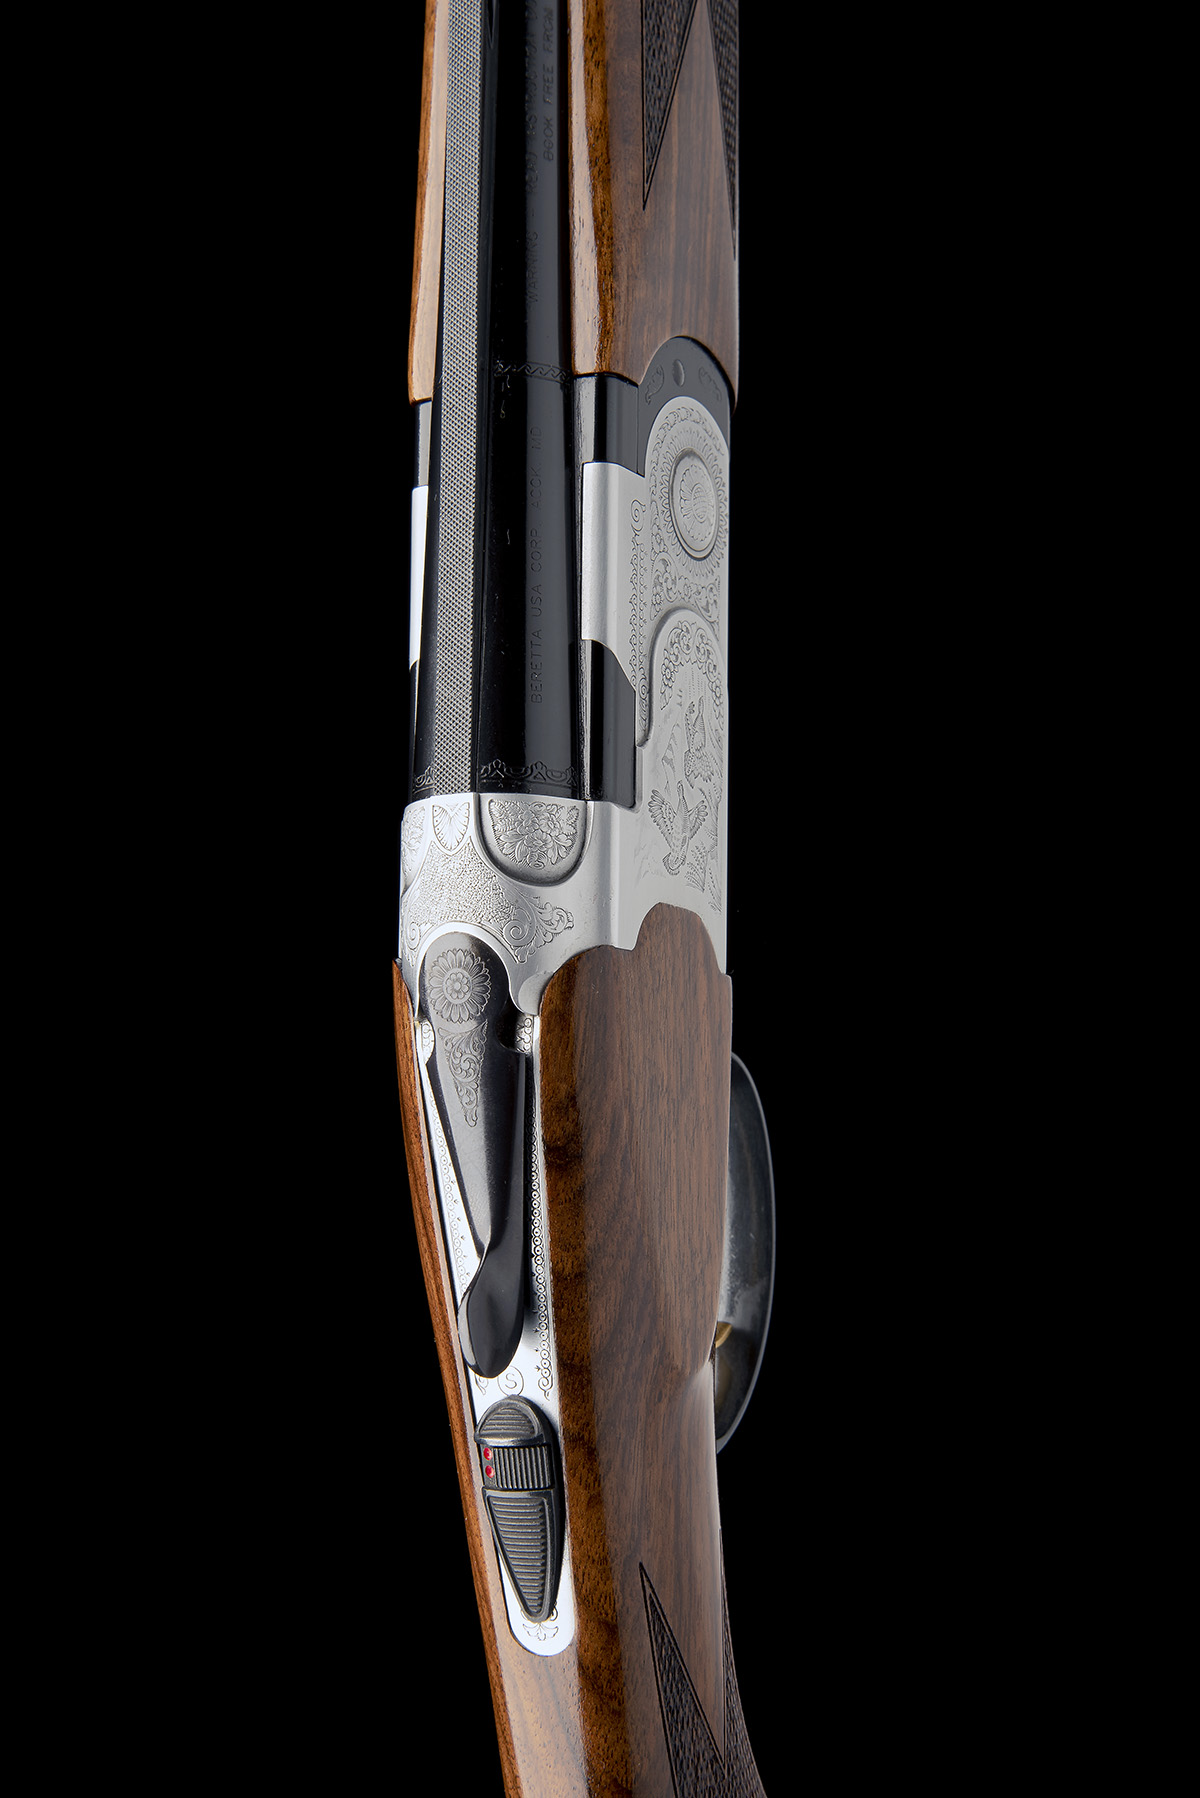 P. BERETTA A 20-BORE (3IN.) 'S687 SILVER PIGEON' SINGLE-TRIGGER OVER AND UNDER EJECTOR, serial no. - Image 6 of 8